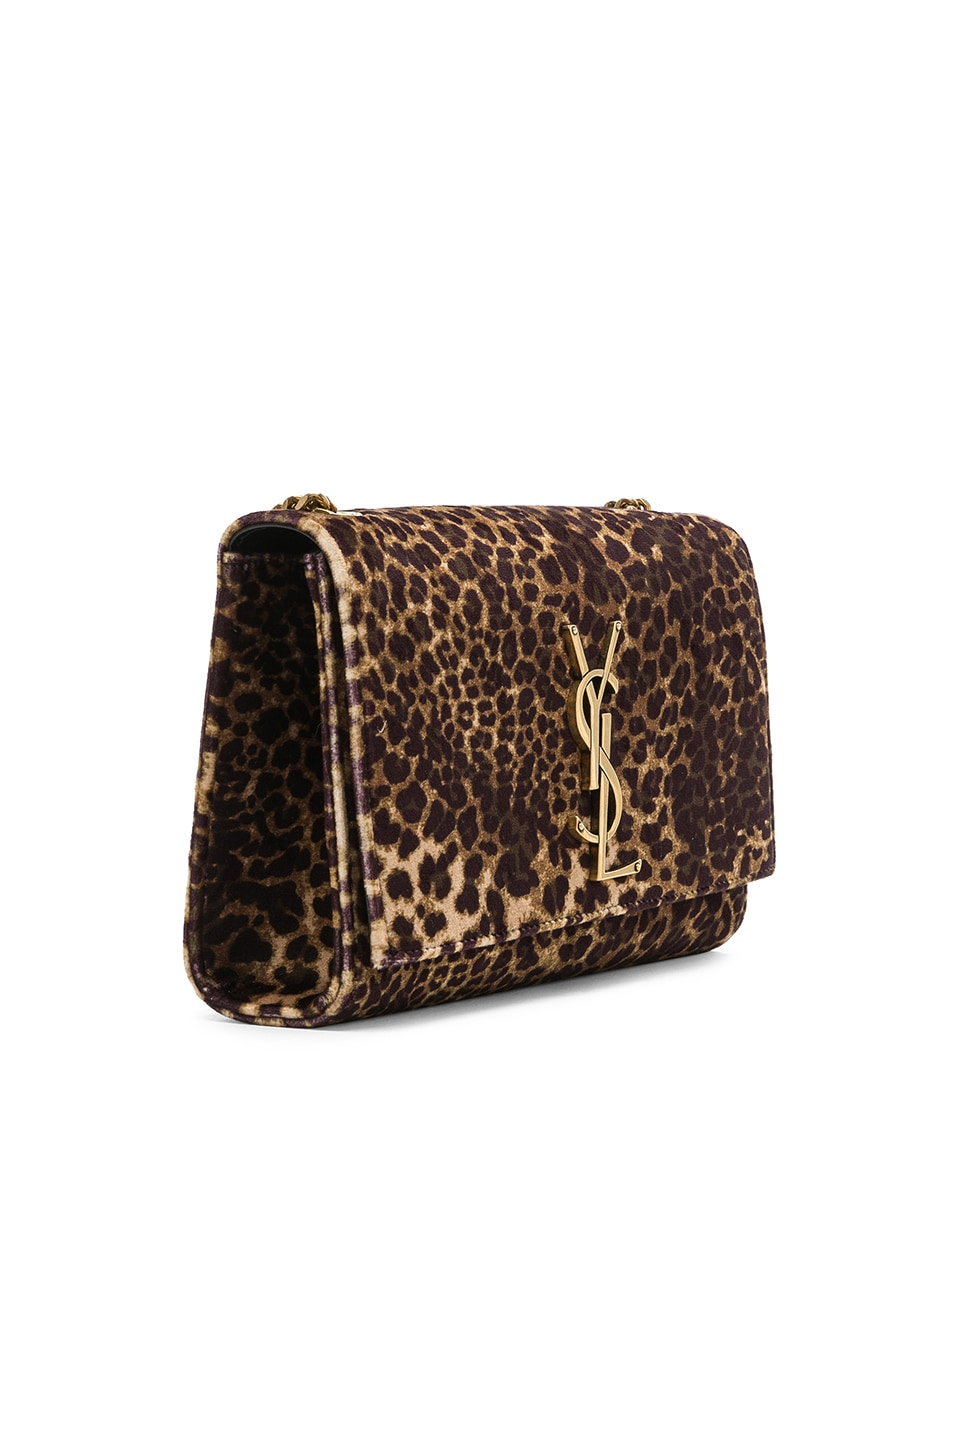 7a364491e4dc Image 4 of Saint Laurent Small Leopard Print Velvet Monogramme Kate Chain  Bag in Natural